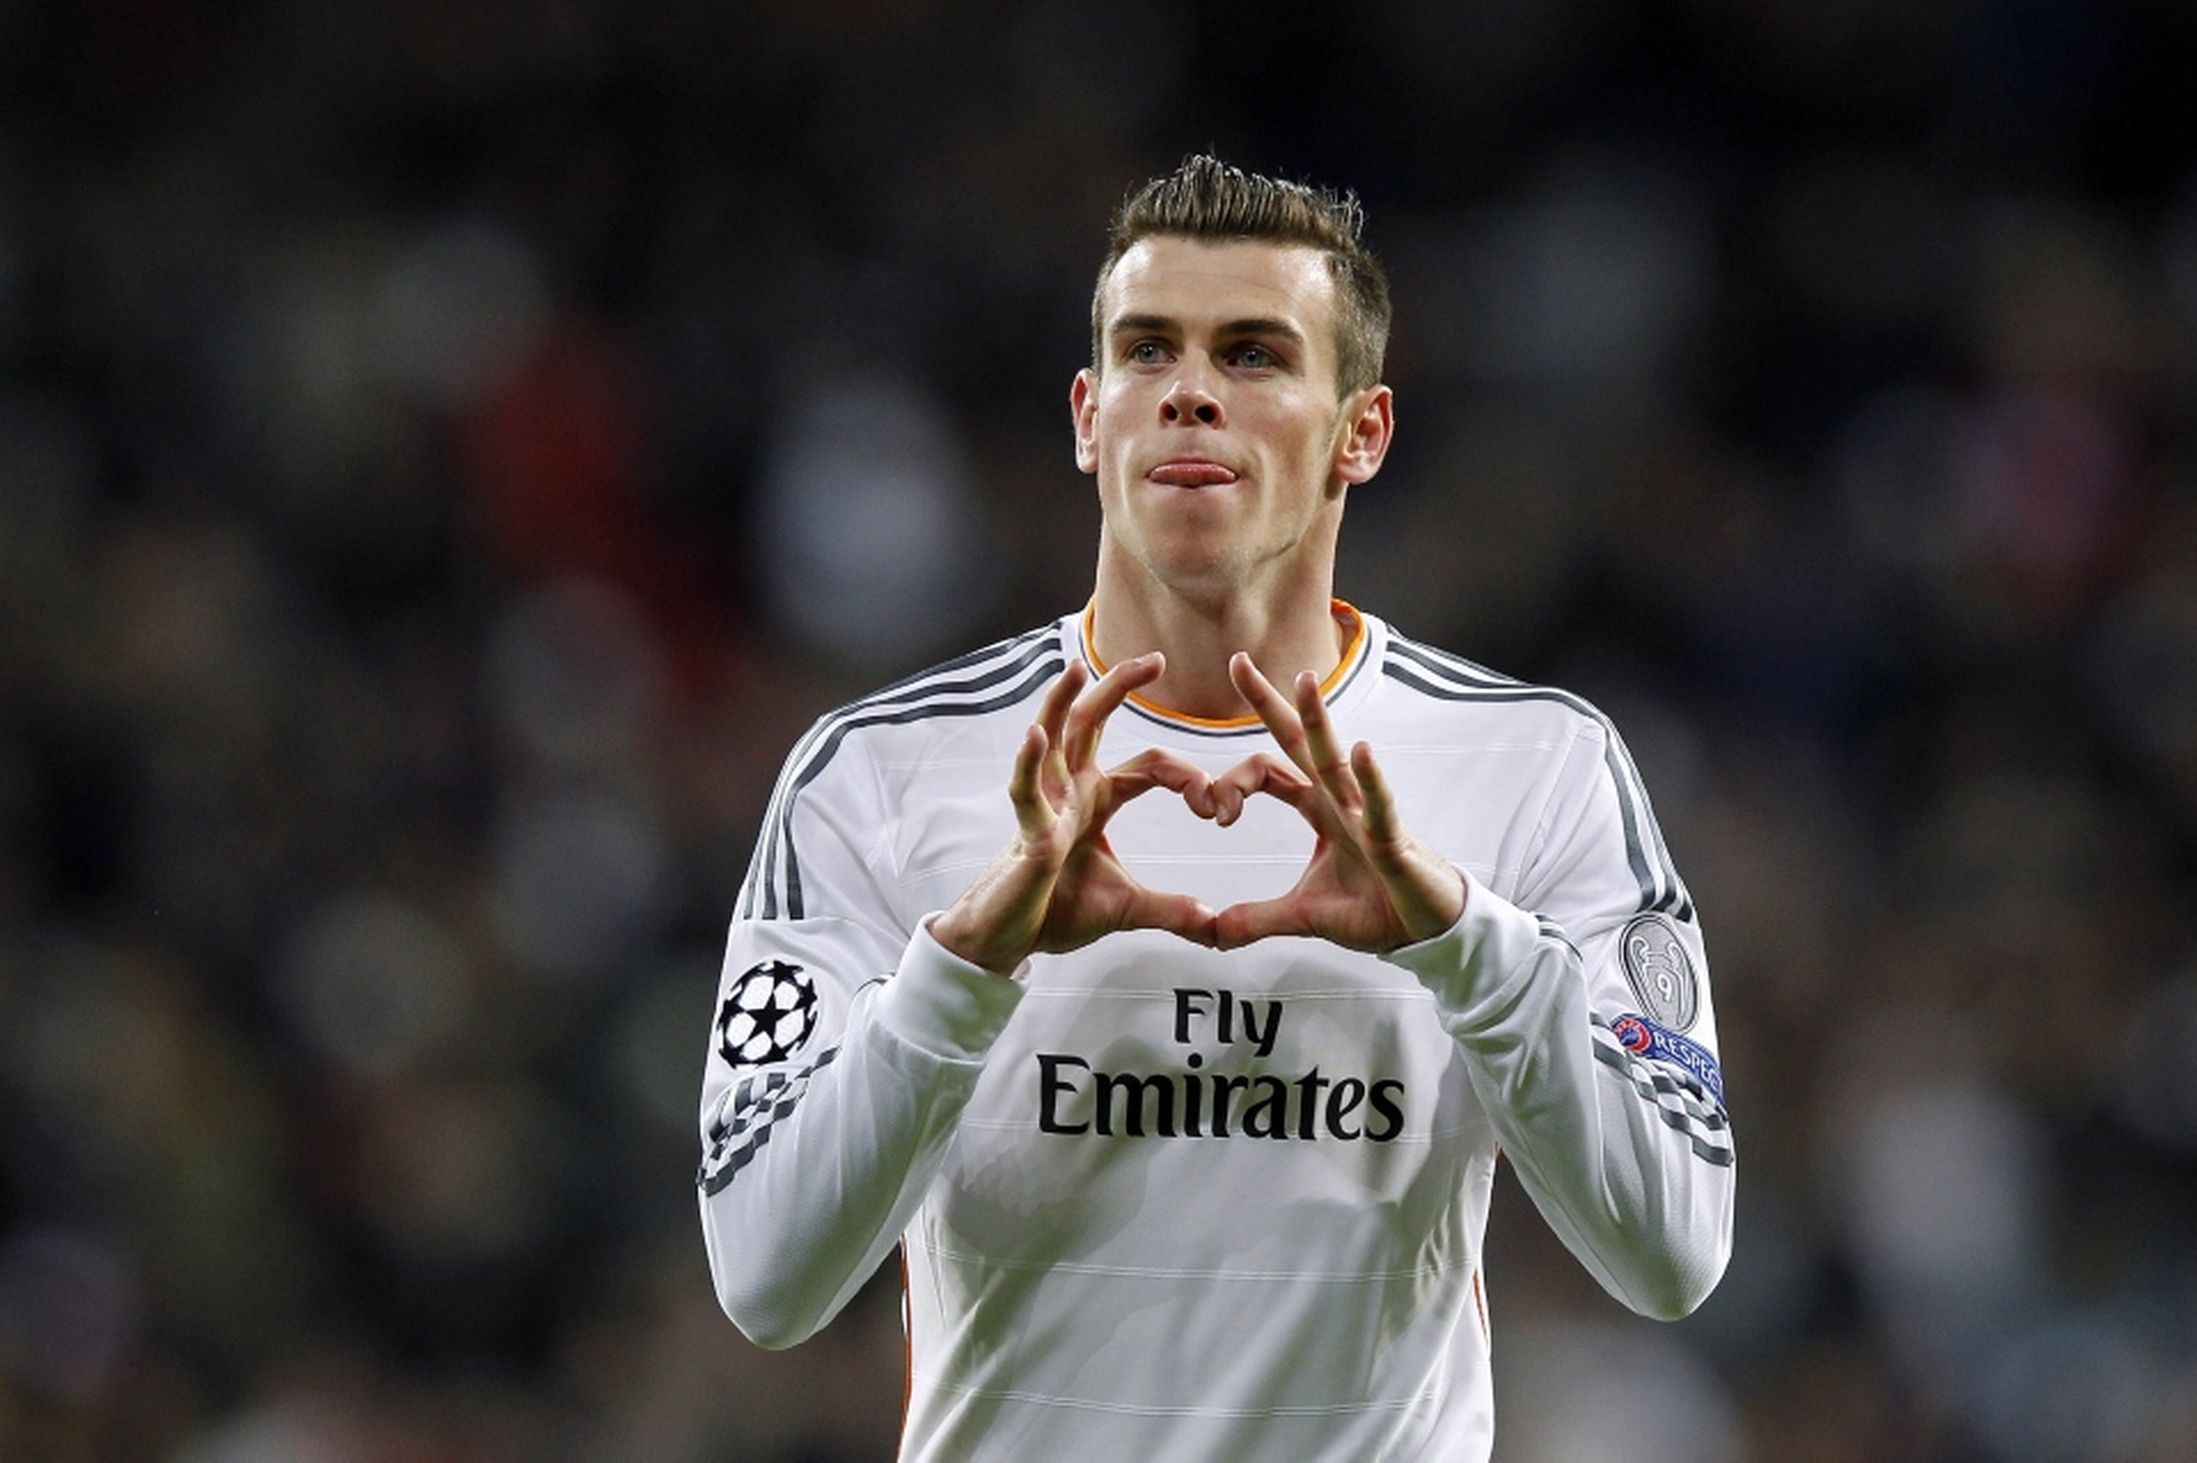 http://du8znpjowa92.cloudfront.net/wp-content/uploads/2015/01/Bale-happy-at-Real-Madrid-Neto-set-to-leave-Fiorentina.jpg